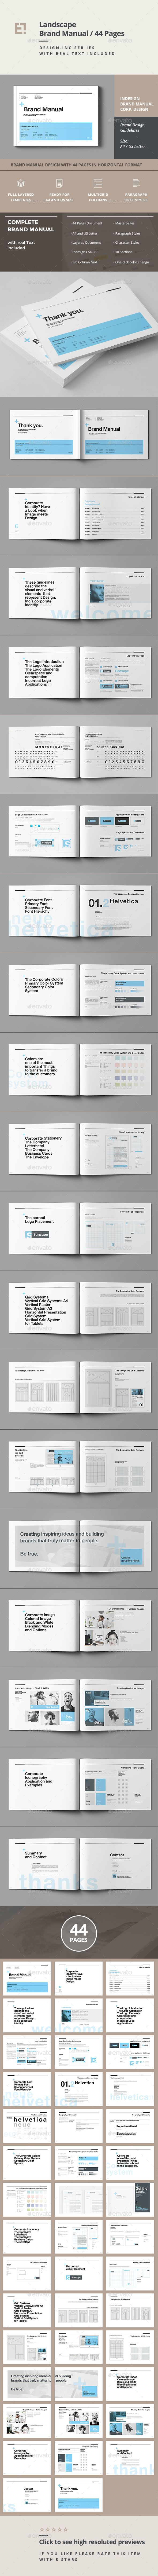 Brand Manual Template InDesign INDD #design Download: http://graphicriver.net/item/brand-manual/14411205?ref=ksioks